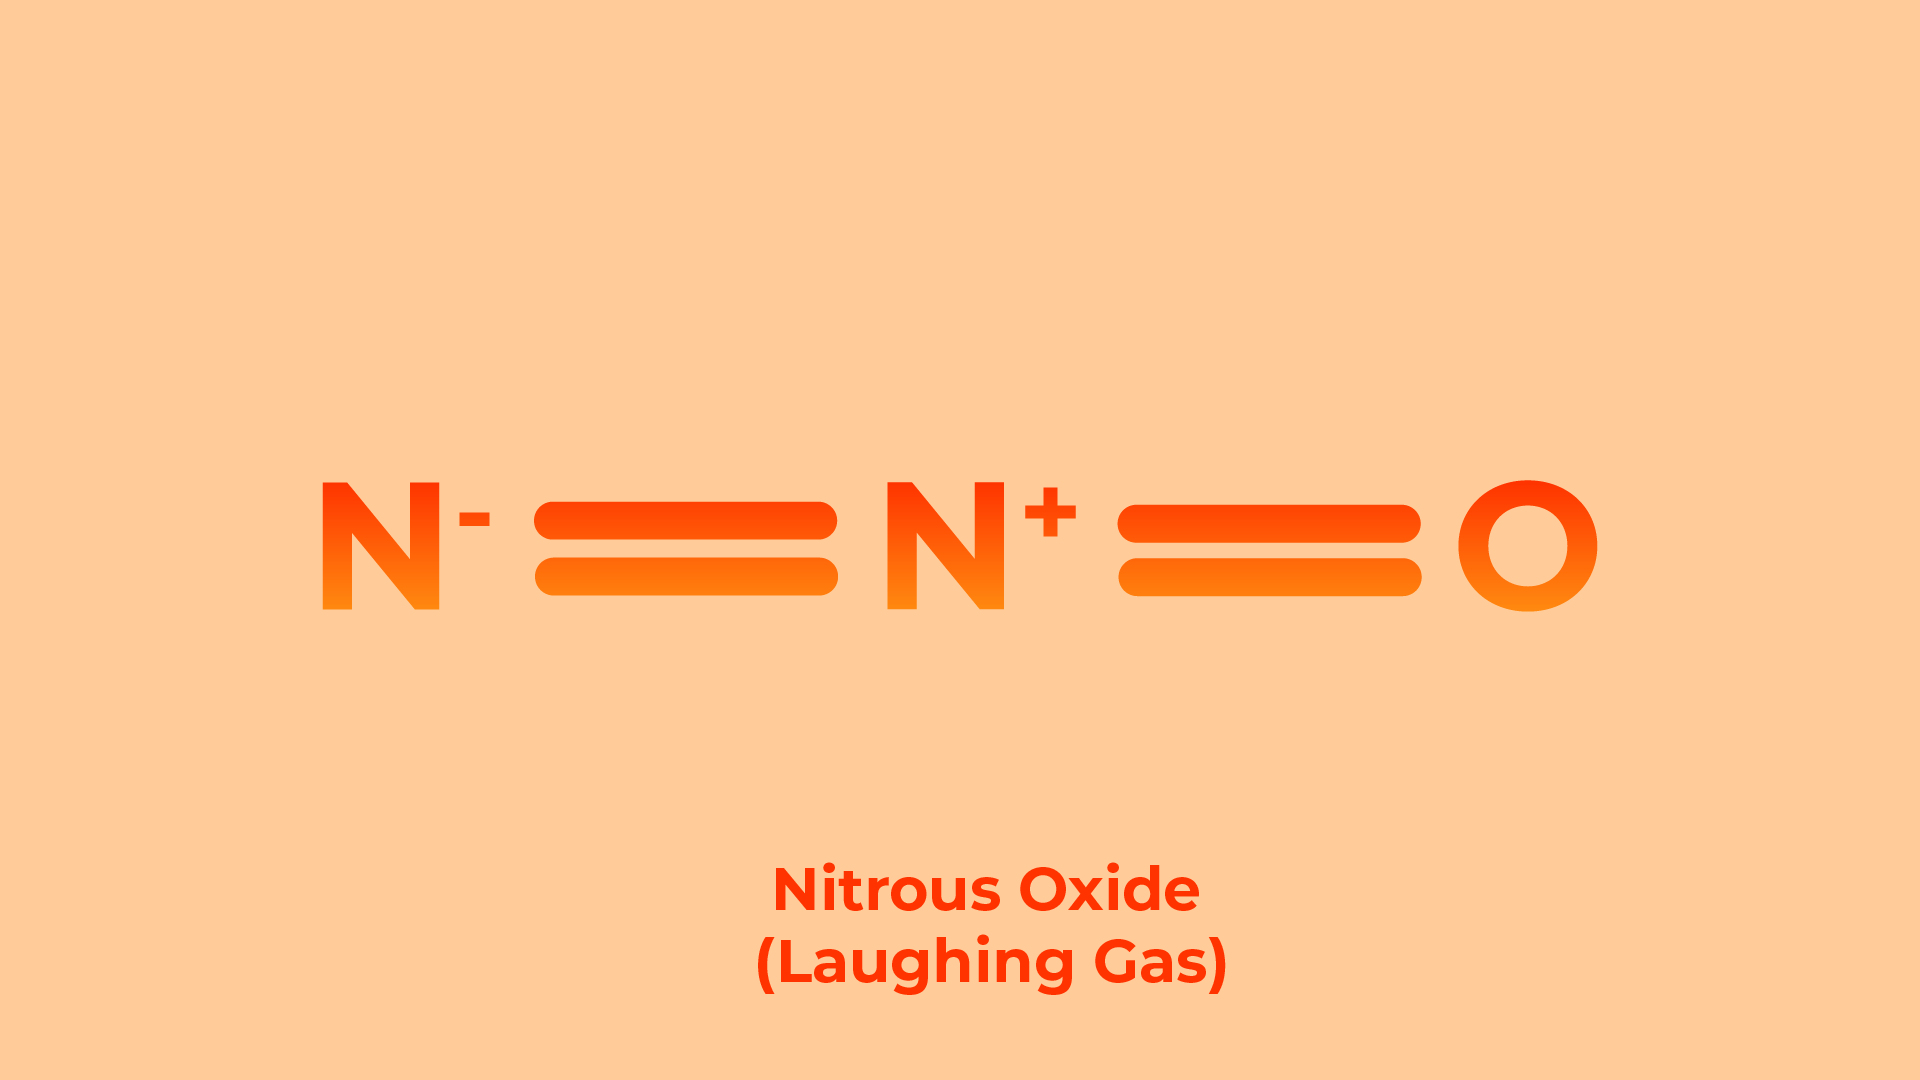 Nitrous Oxide (Laughing Gas) Molecule Chemical Structure